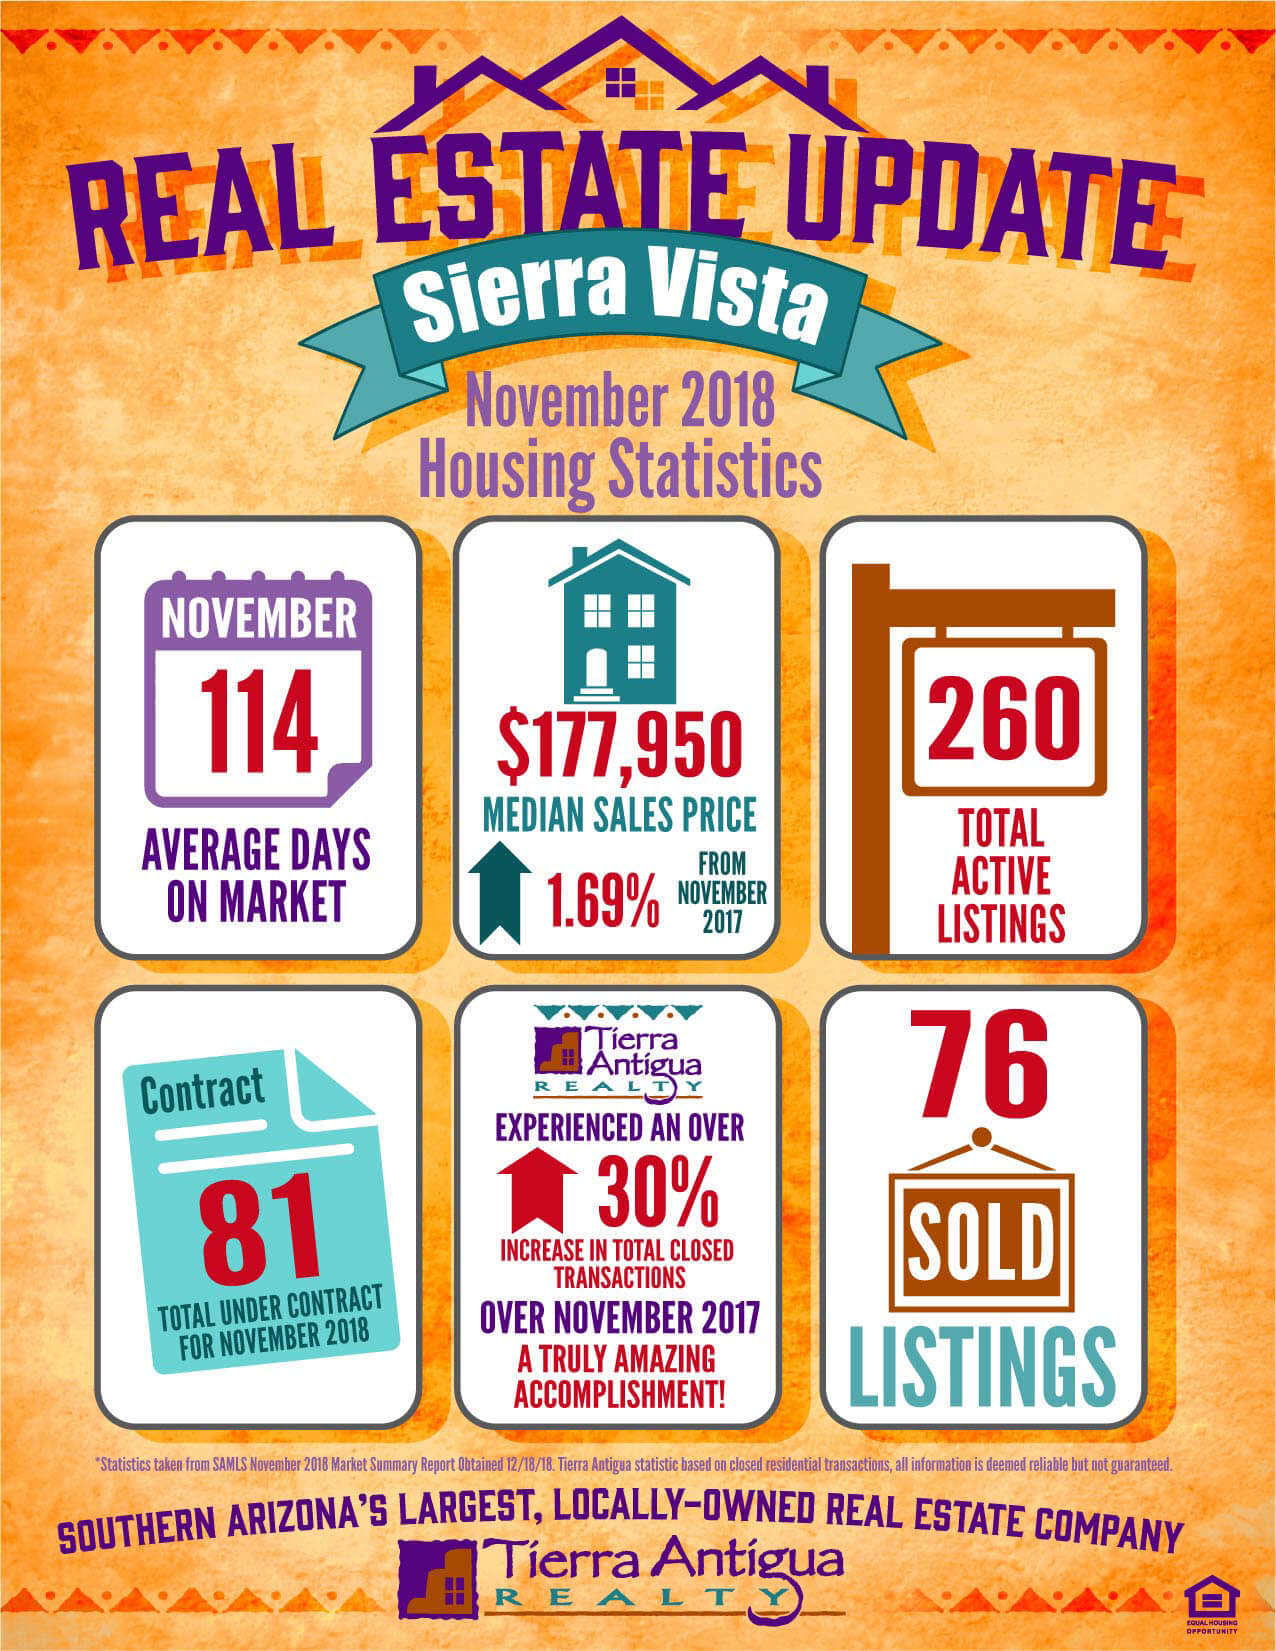 Sierra Vista Real Estate Update November 2018